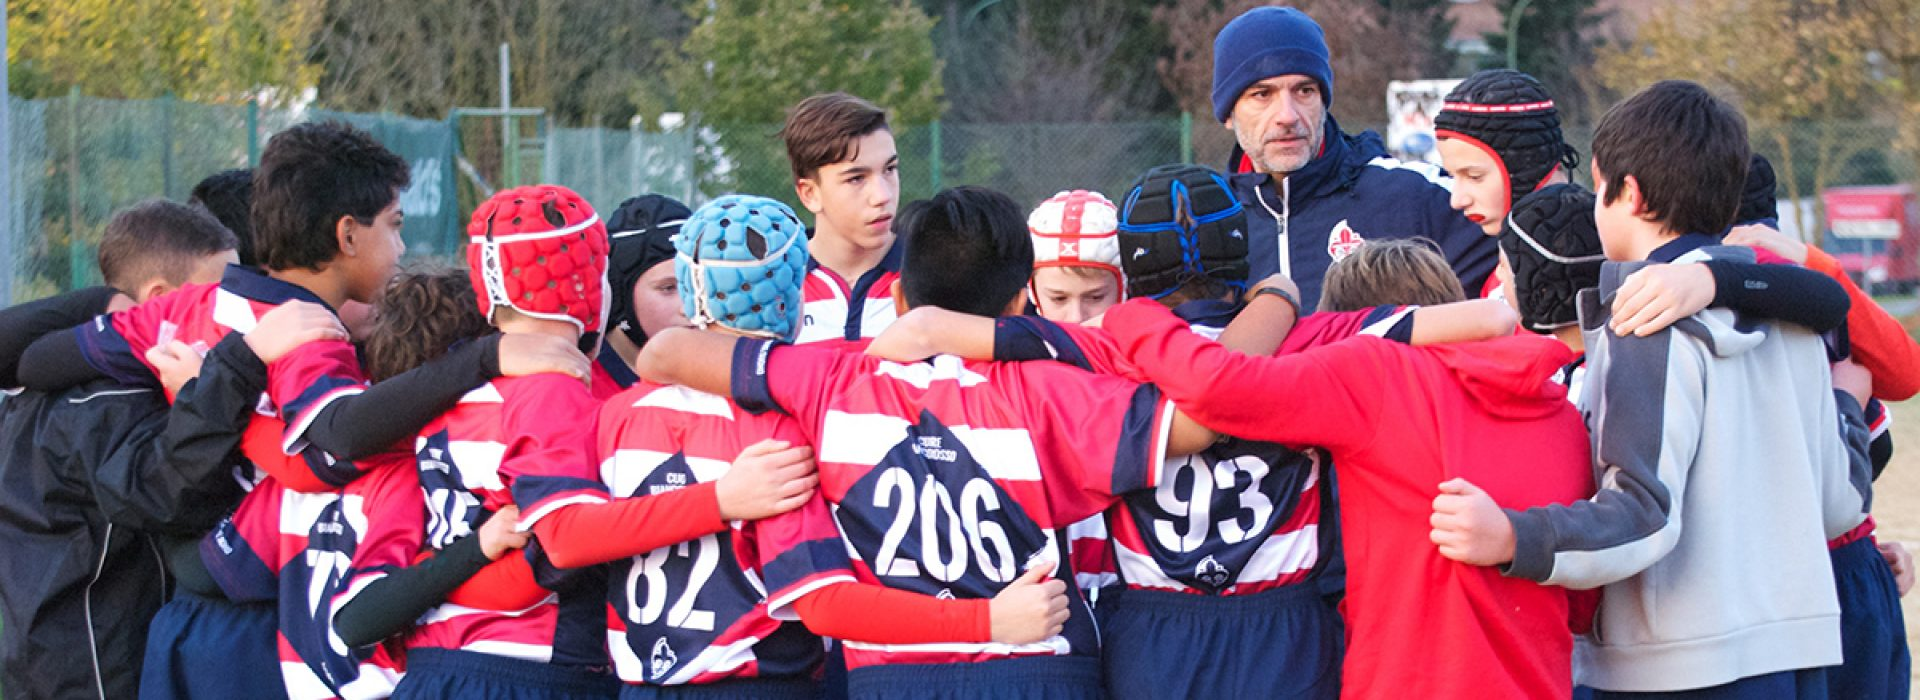 IMPEGNO E RESILIENZA PER LE UNDER 16, VITTORIA DELL'UNDER 14 A SIENA